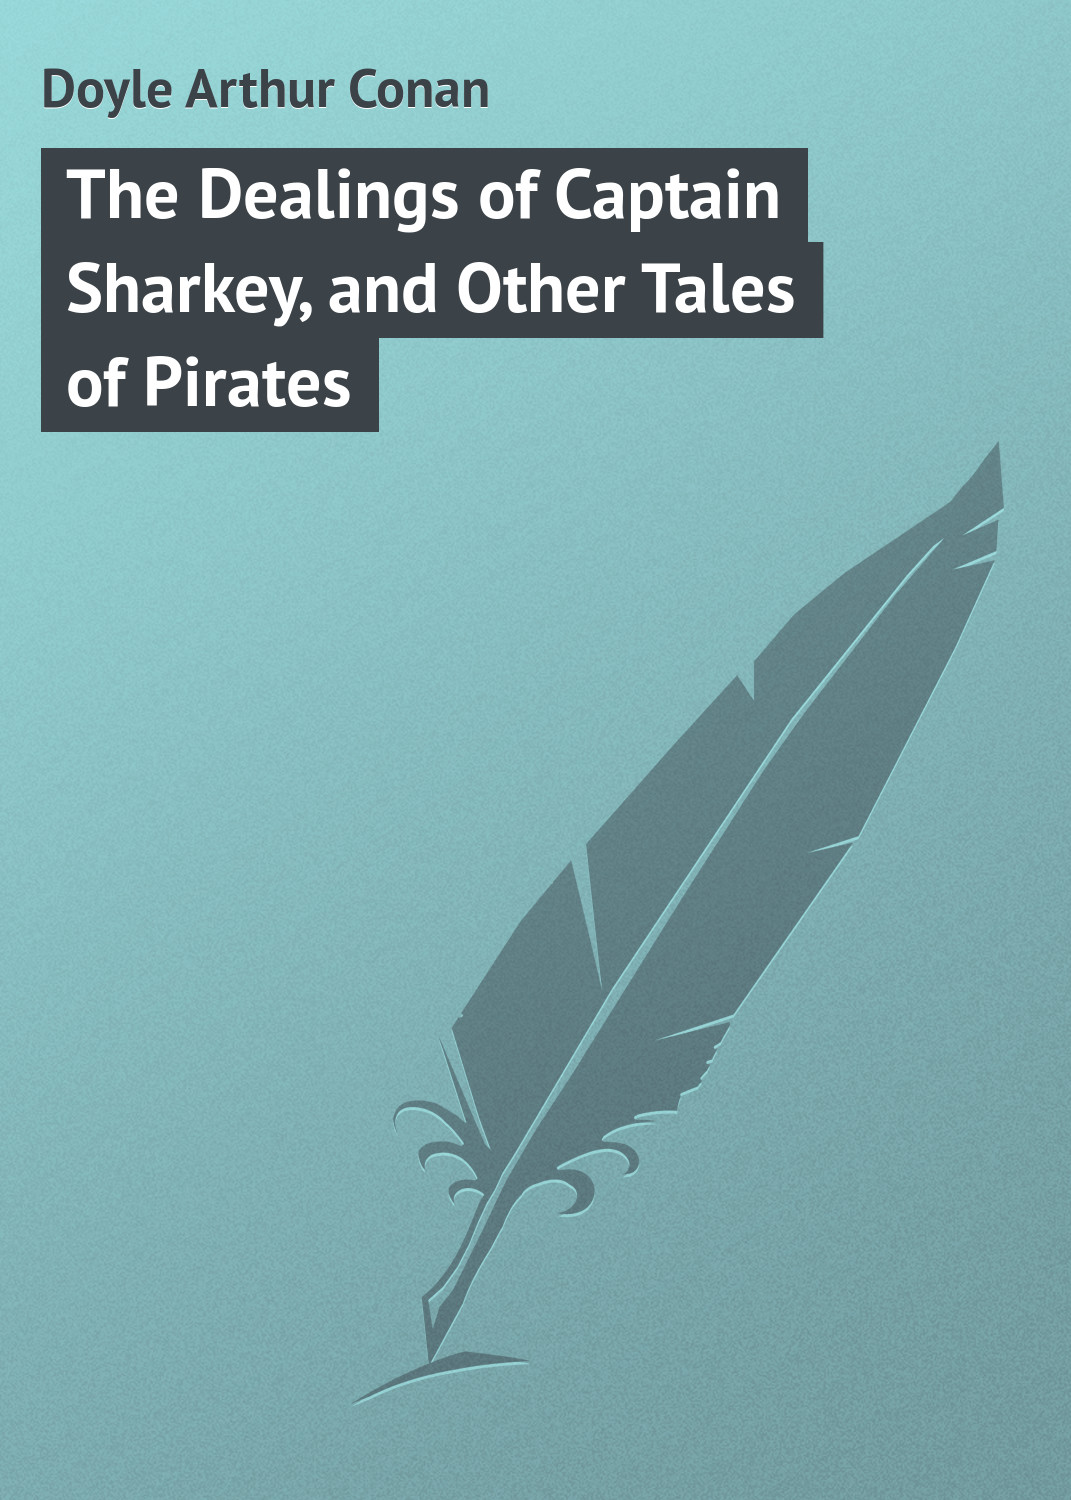 Doyle Arthur Conan The Dealings of Captain Sharkey, and Other Tales of Pirates arthur conan doyle tales of long ago isbn 978 5 521 07161 6